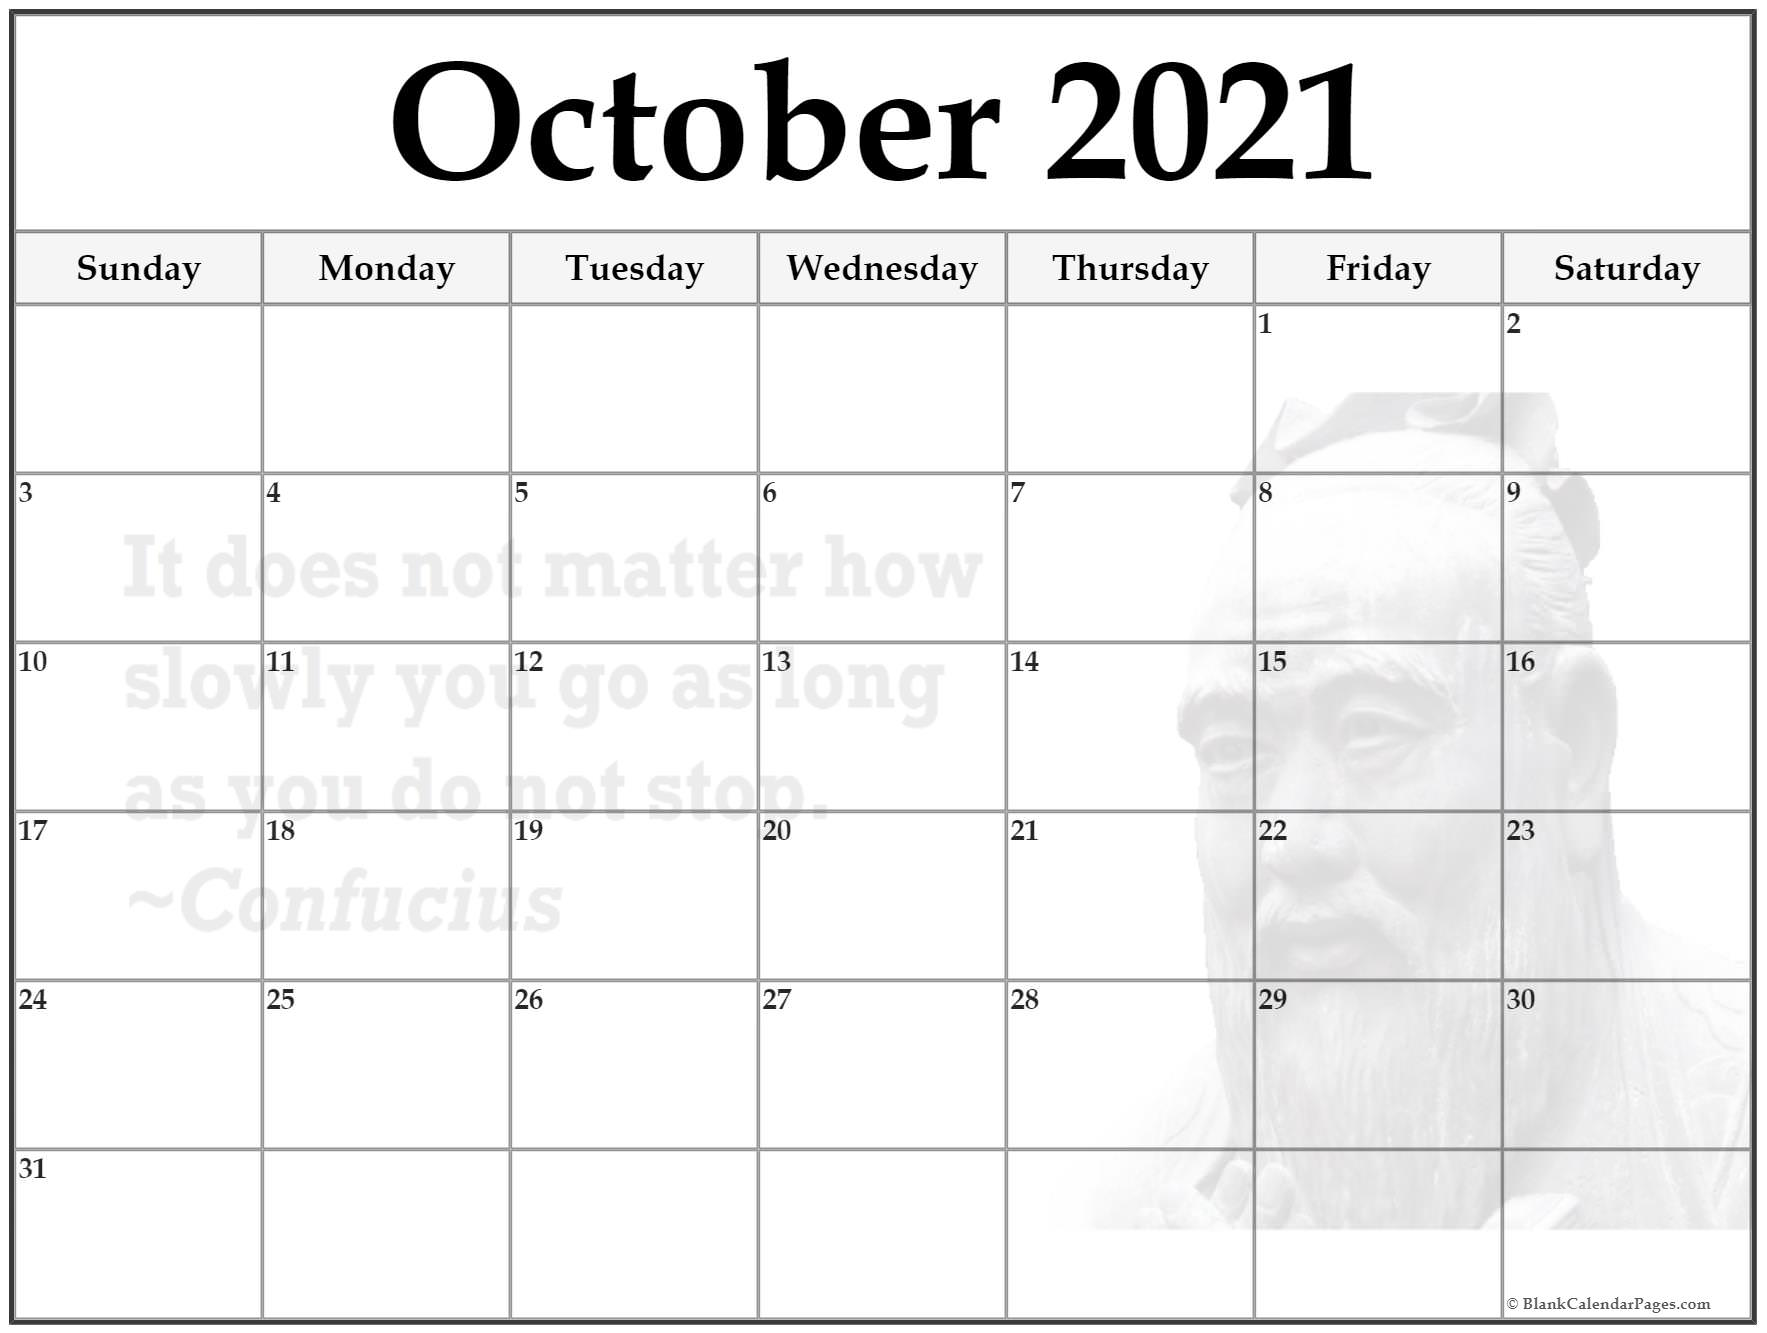 October 2019 monthly calendar template. It does not matter how slowly you go as long as you don't stop ~Confucius